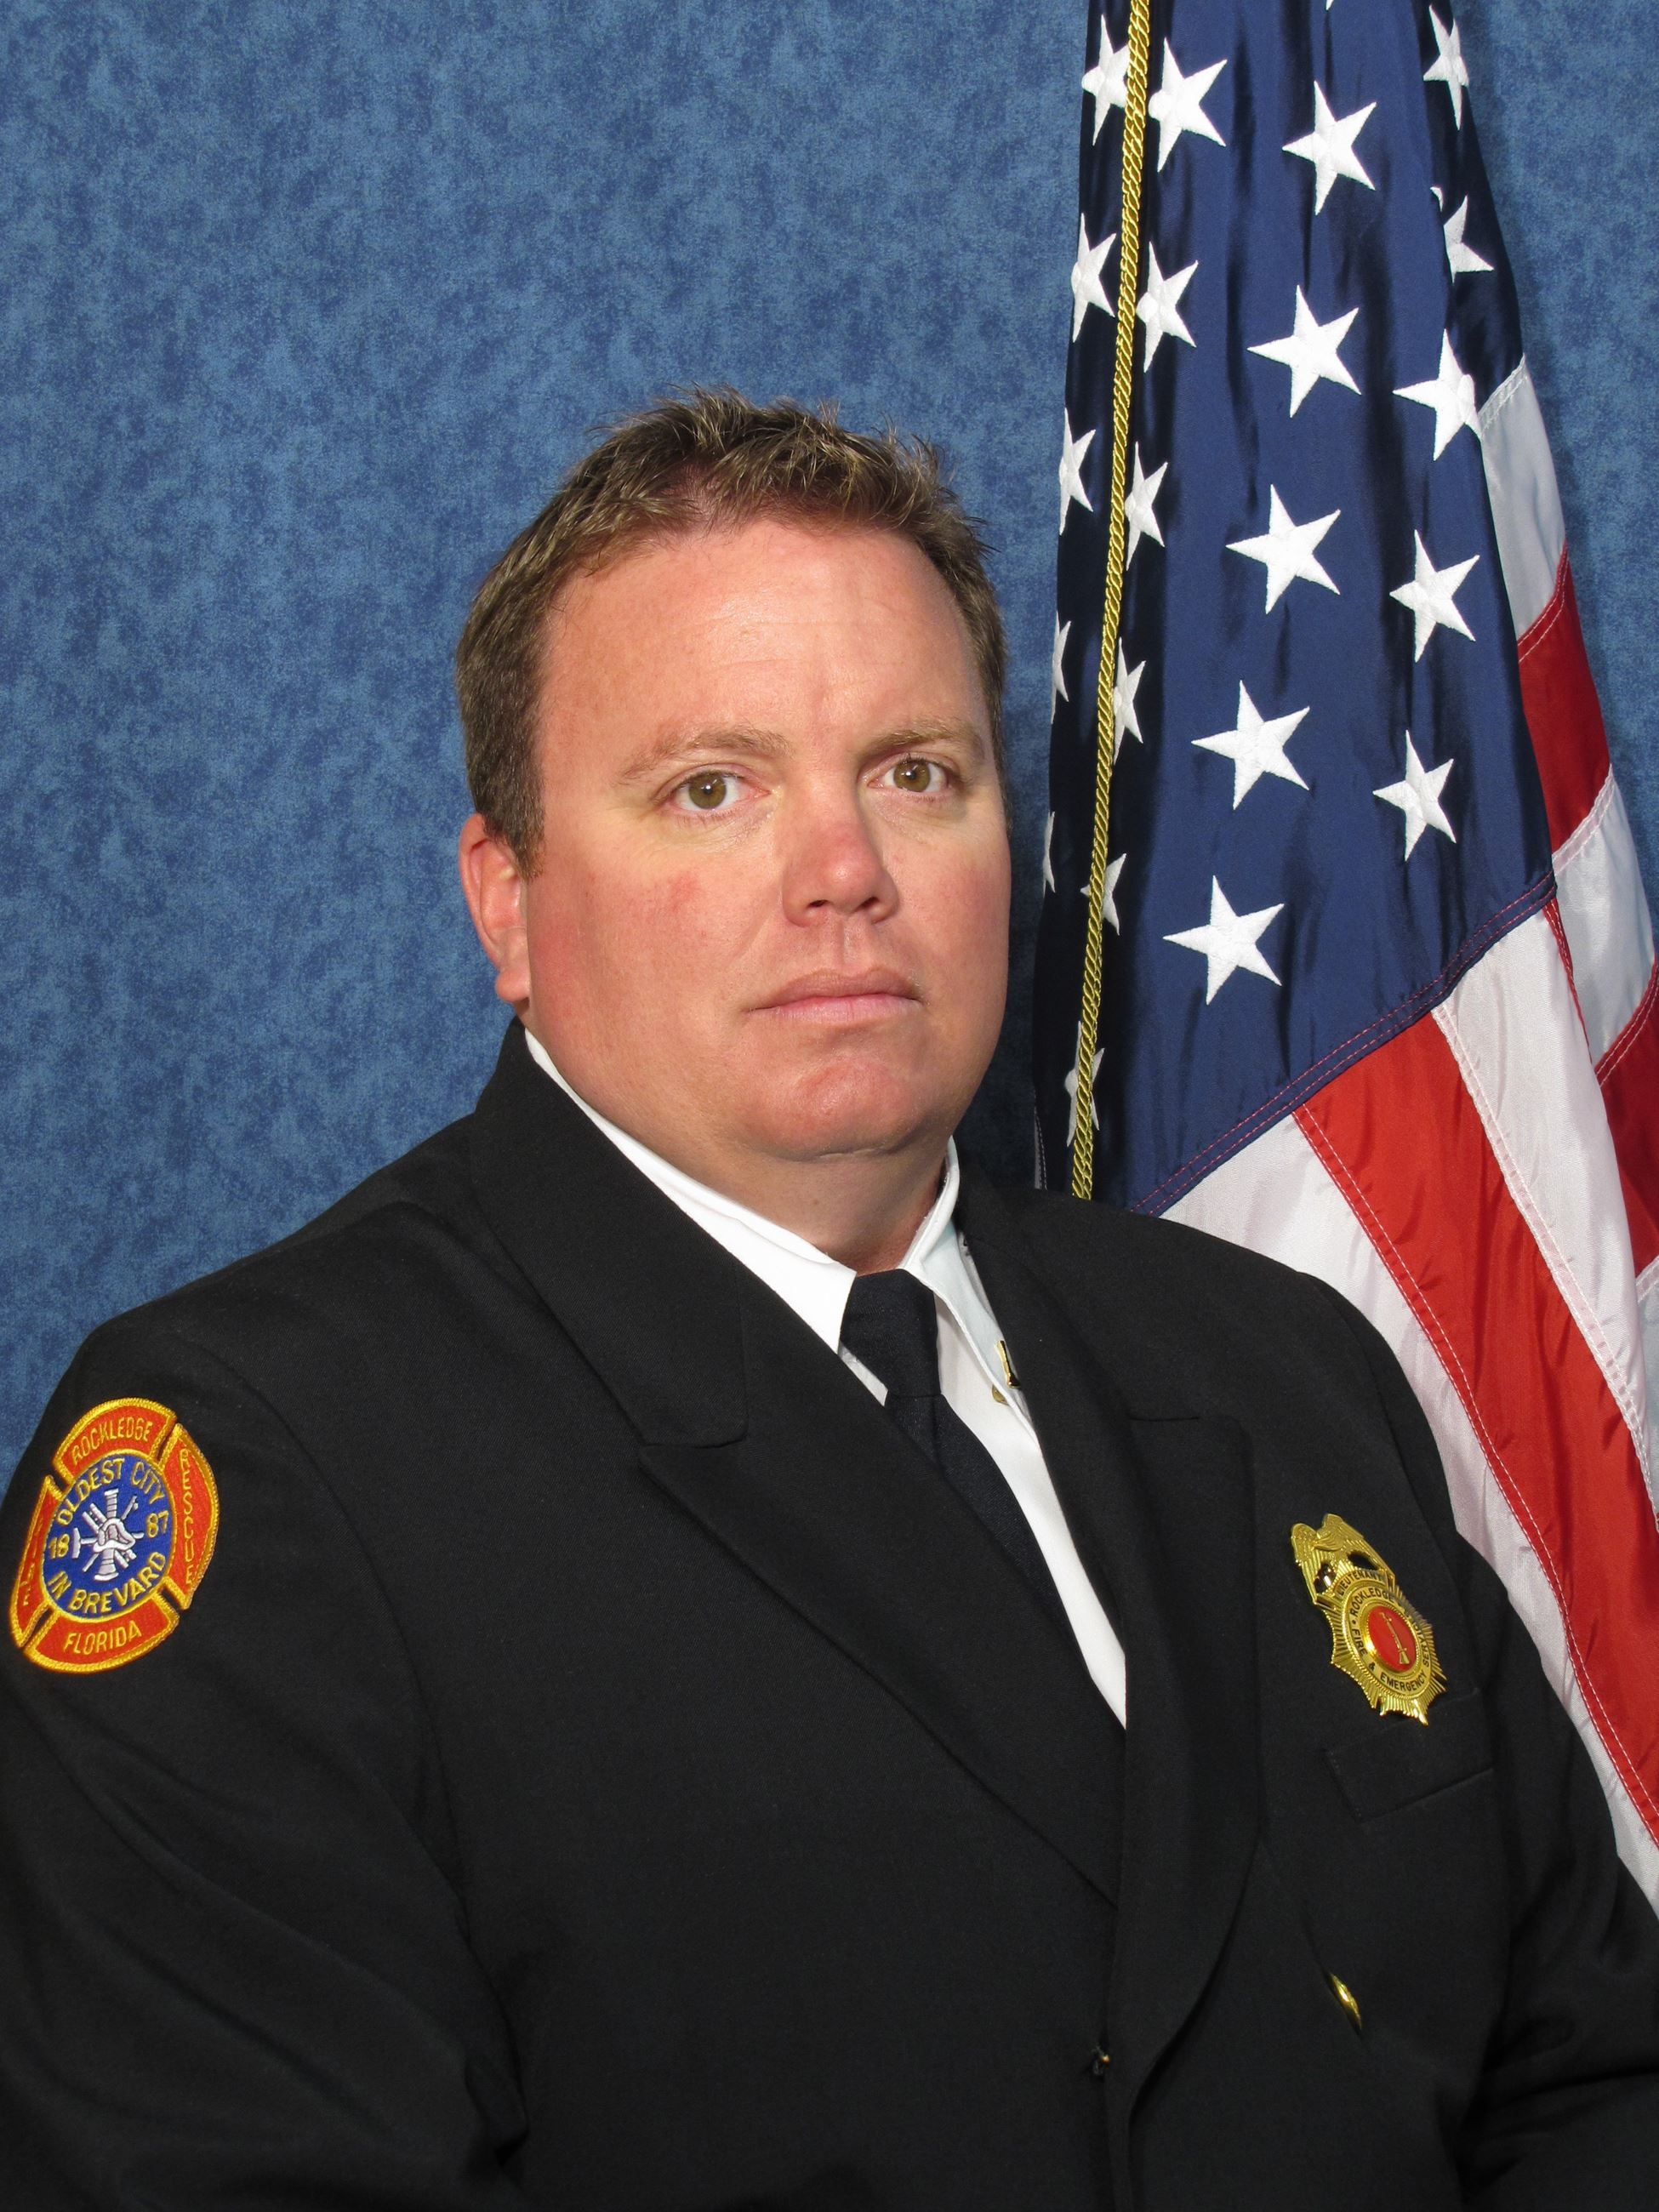 Chief Steve Deatherage